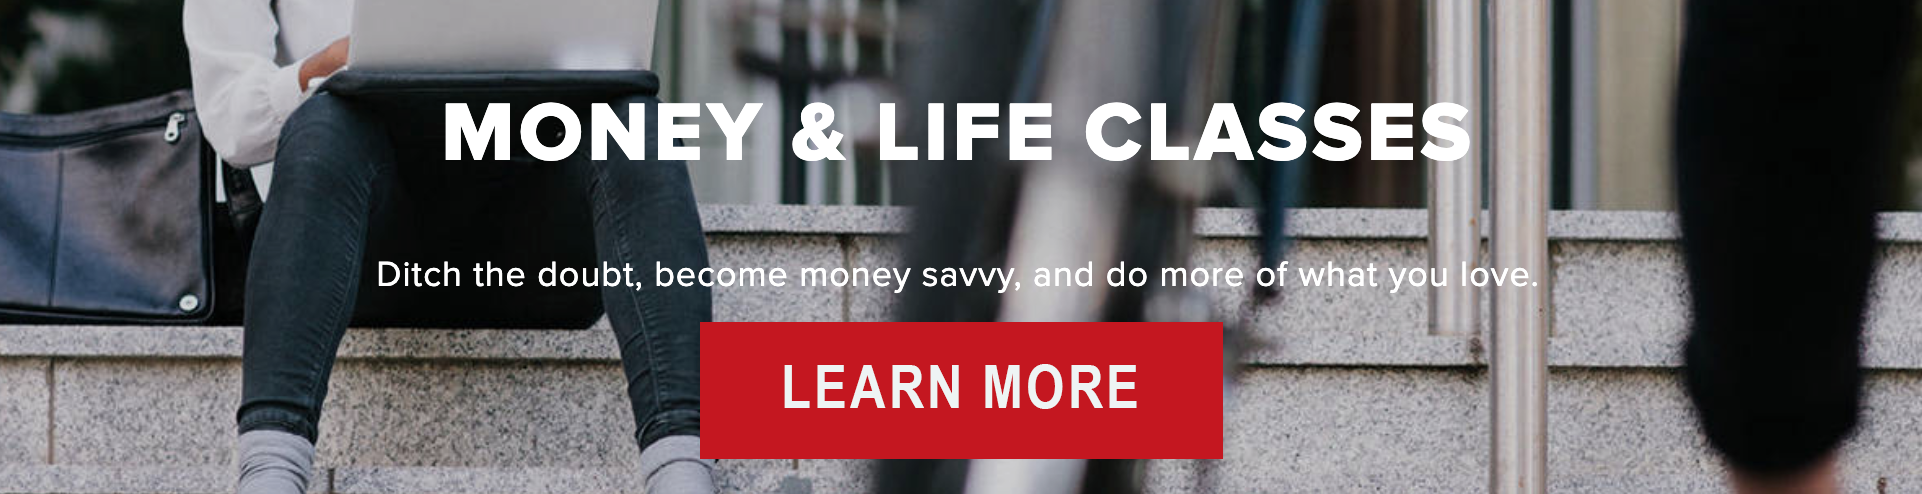 MONEY AND LIFE CLASSES CREATIVELIVE ON SALE